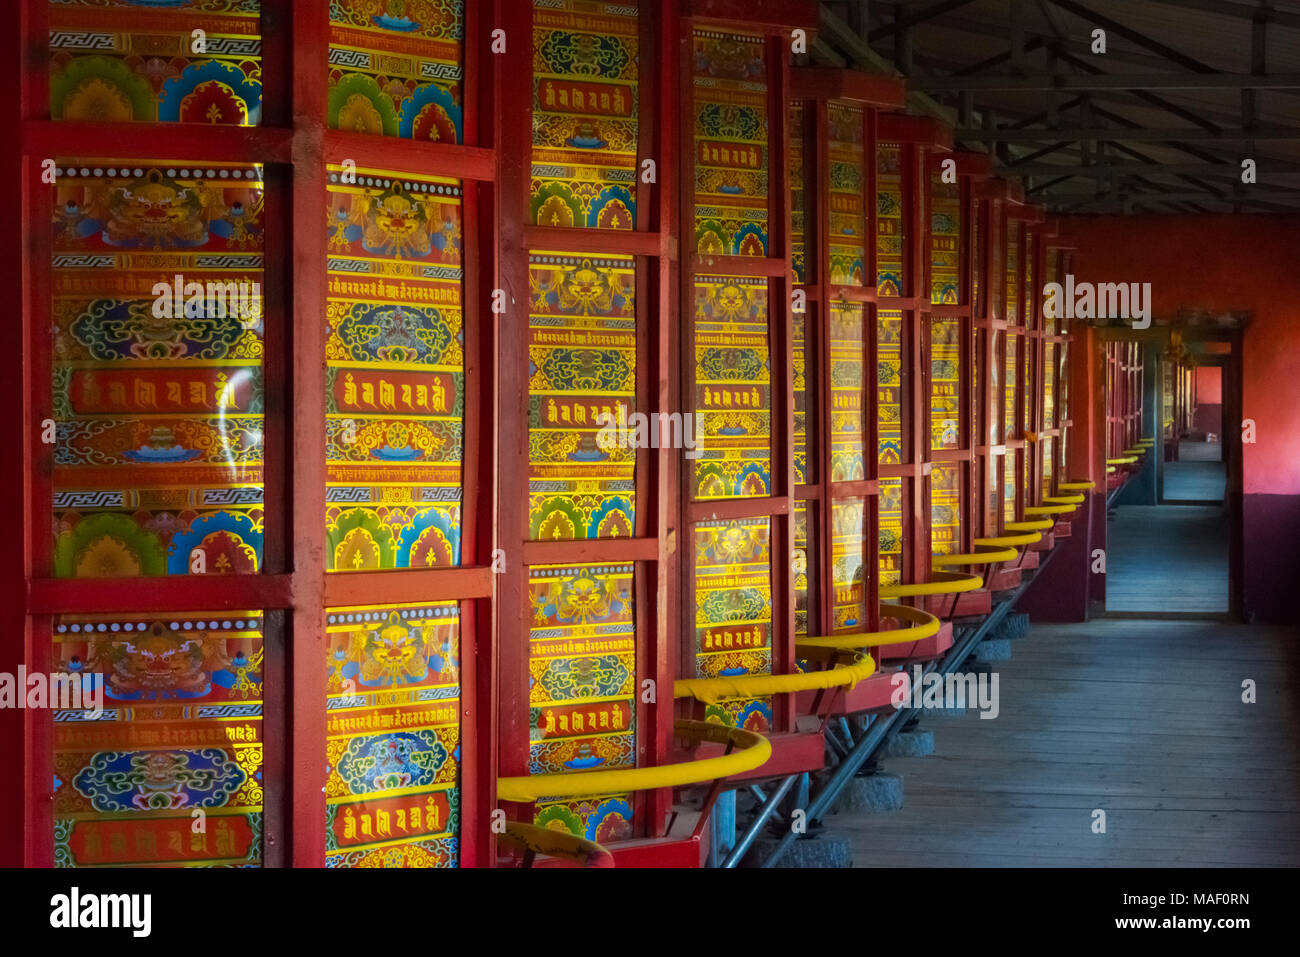 Praying wheels in the temple, Tagong, western Sichuan, China - Stock Image